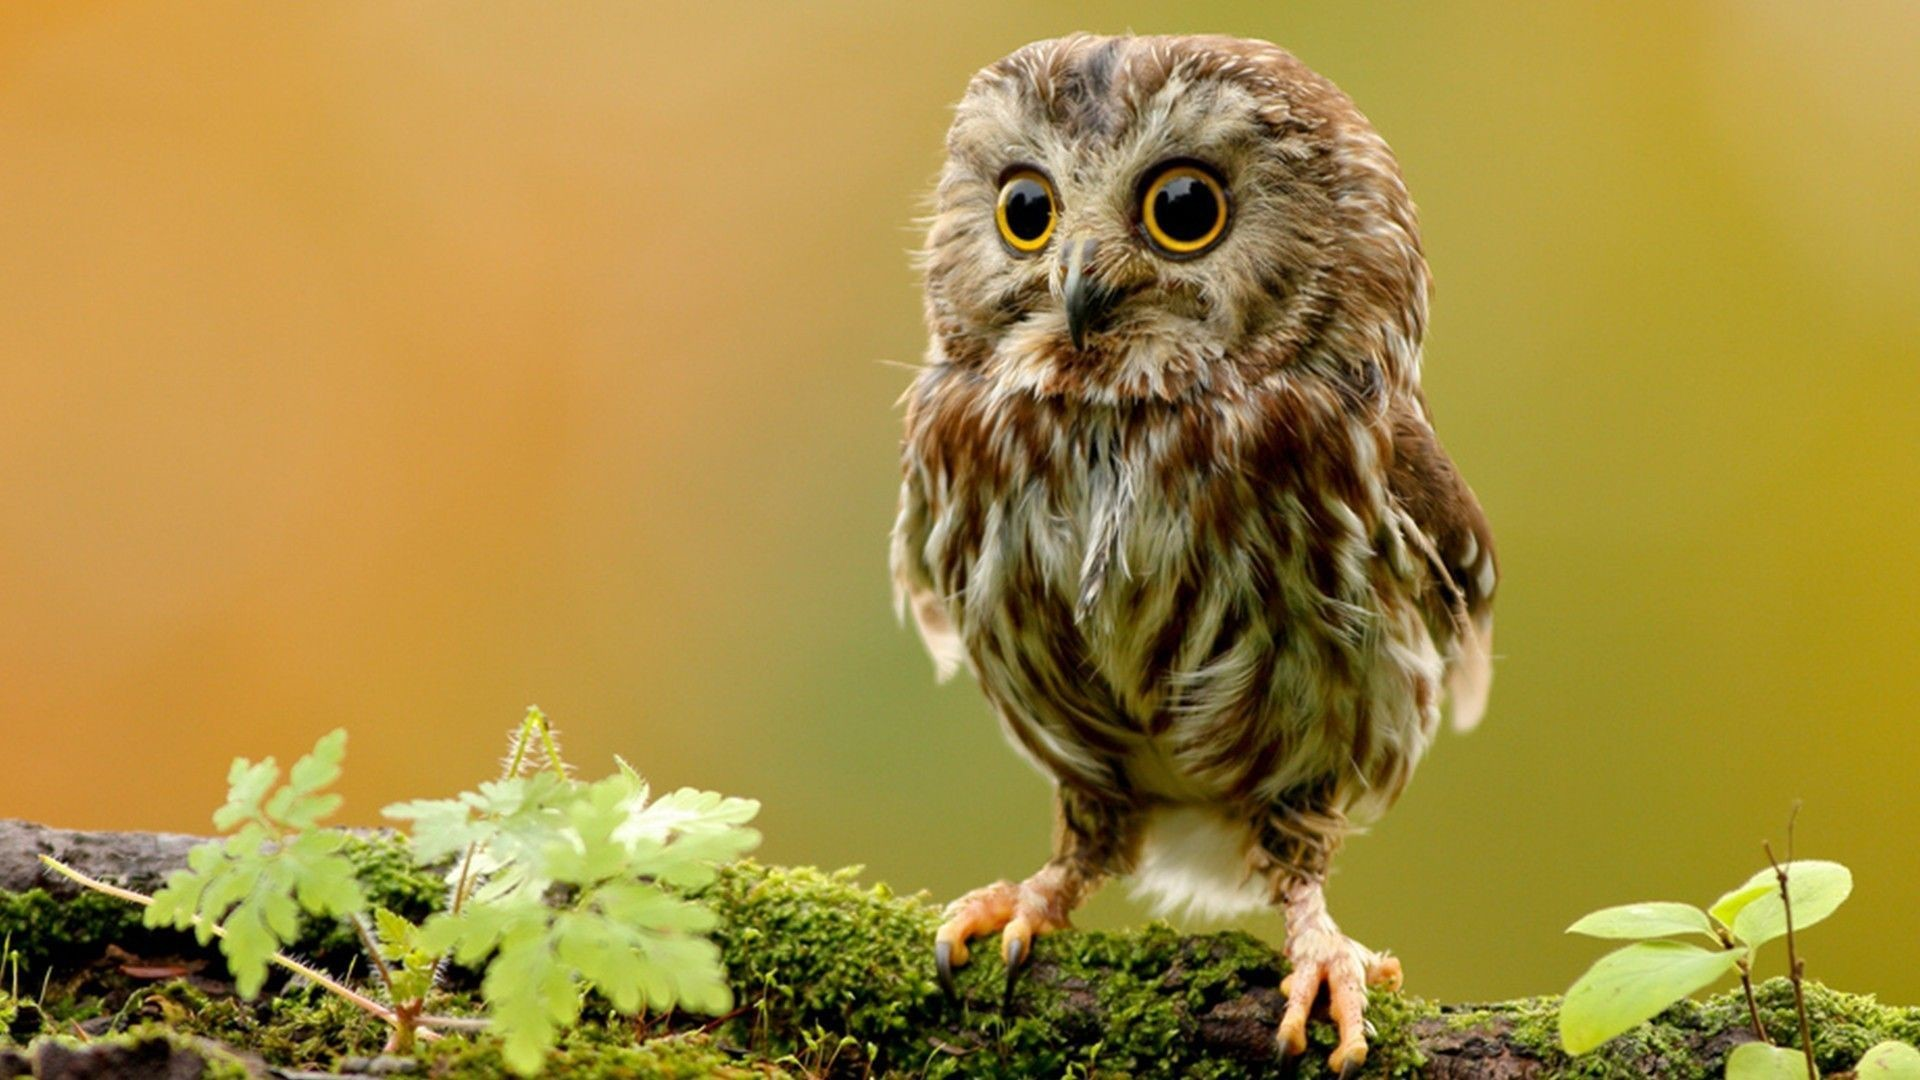 Res: 1920x1080, Animal Cute Owl Wallpaper Real Simple Classic Plant Green Adjustable Tree  Motive